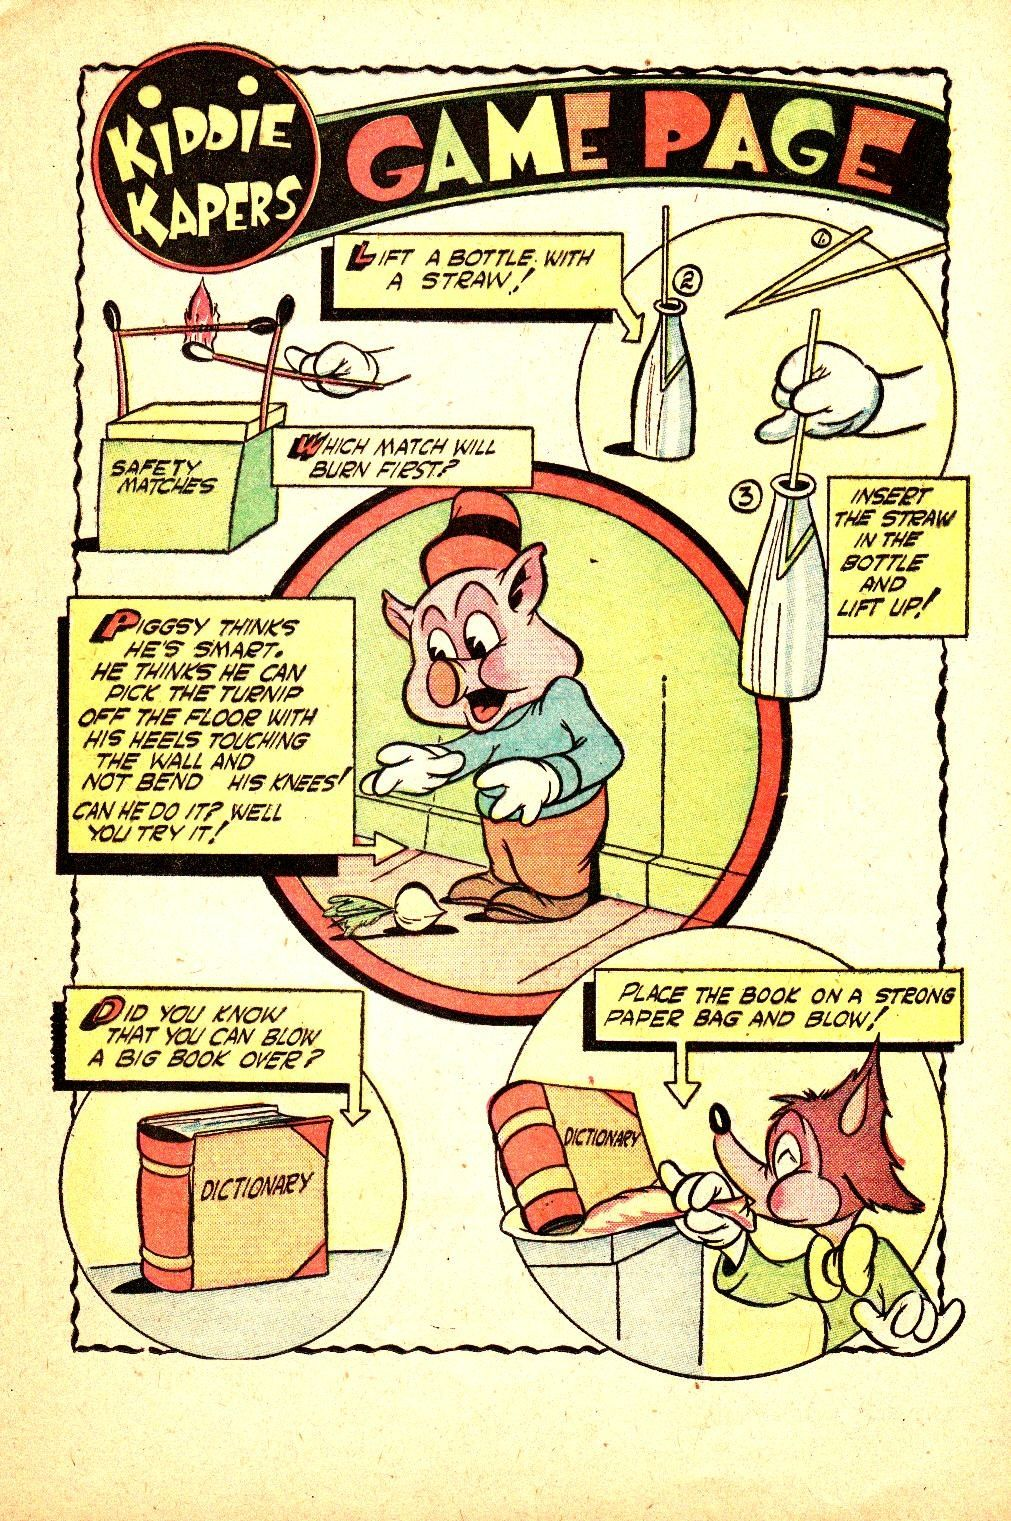 Kiddie Kapers Game Page safety matches  dictionary bottle and straw tricksPiggsy the Funny Animal cartoon Pig comic book scans Kiddie Kapers #1 - Page 17